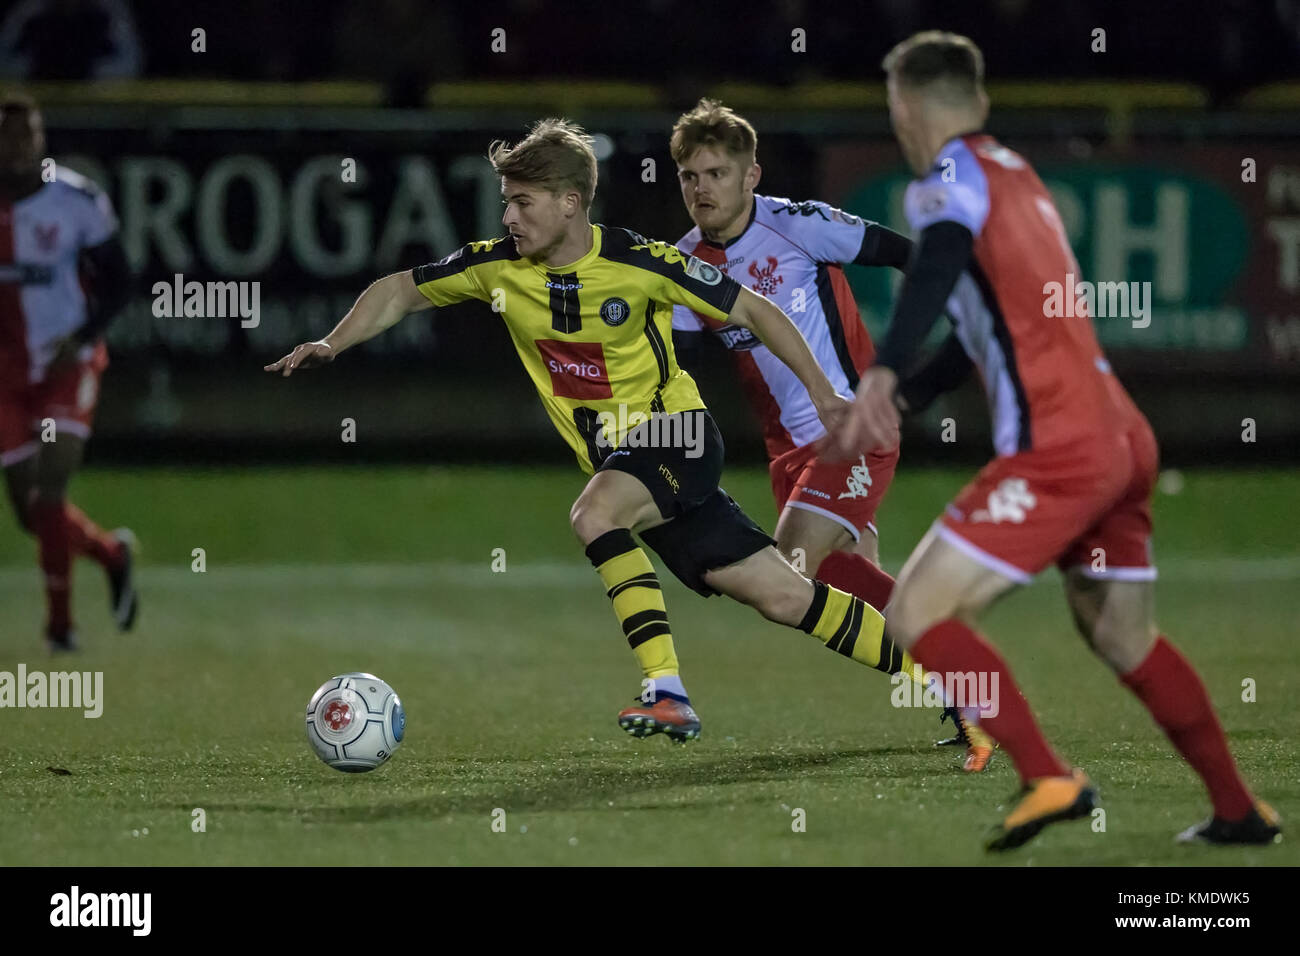 Jordan Thewlis (Harrogate Town) runs at the Kidderminster Harriers defence, during the National League North game. Stock Photo